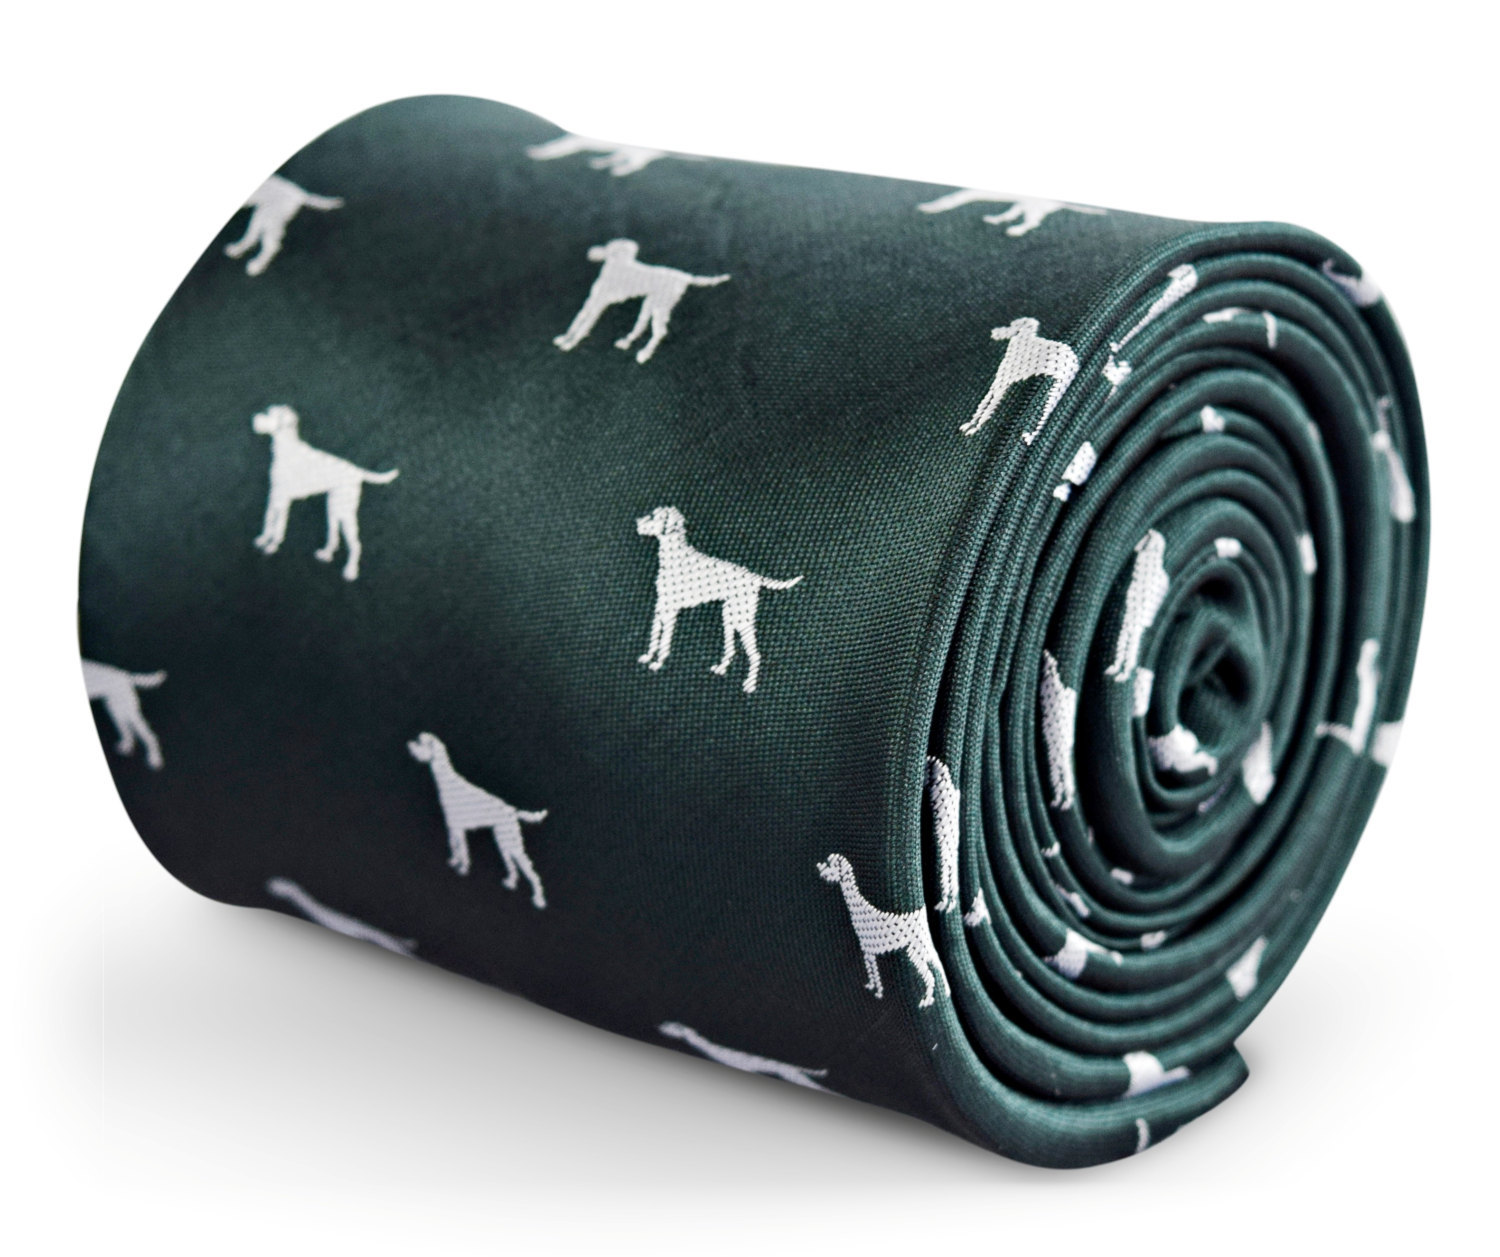 Forest green animal print hound dog tie by Frederick Thomas